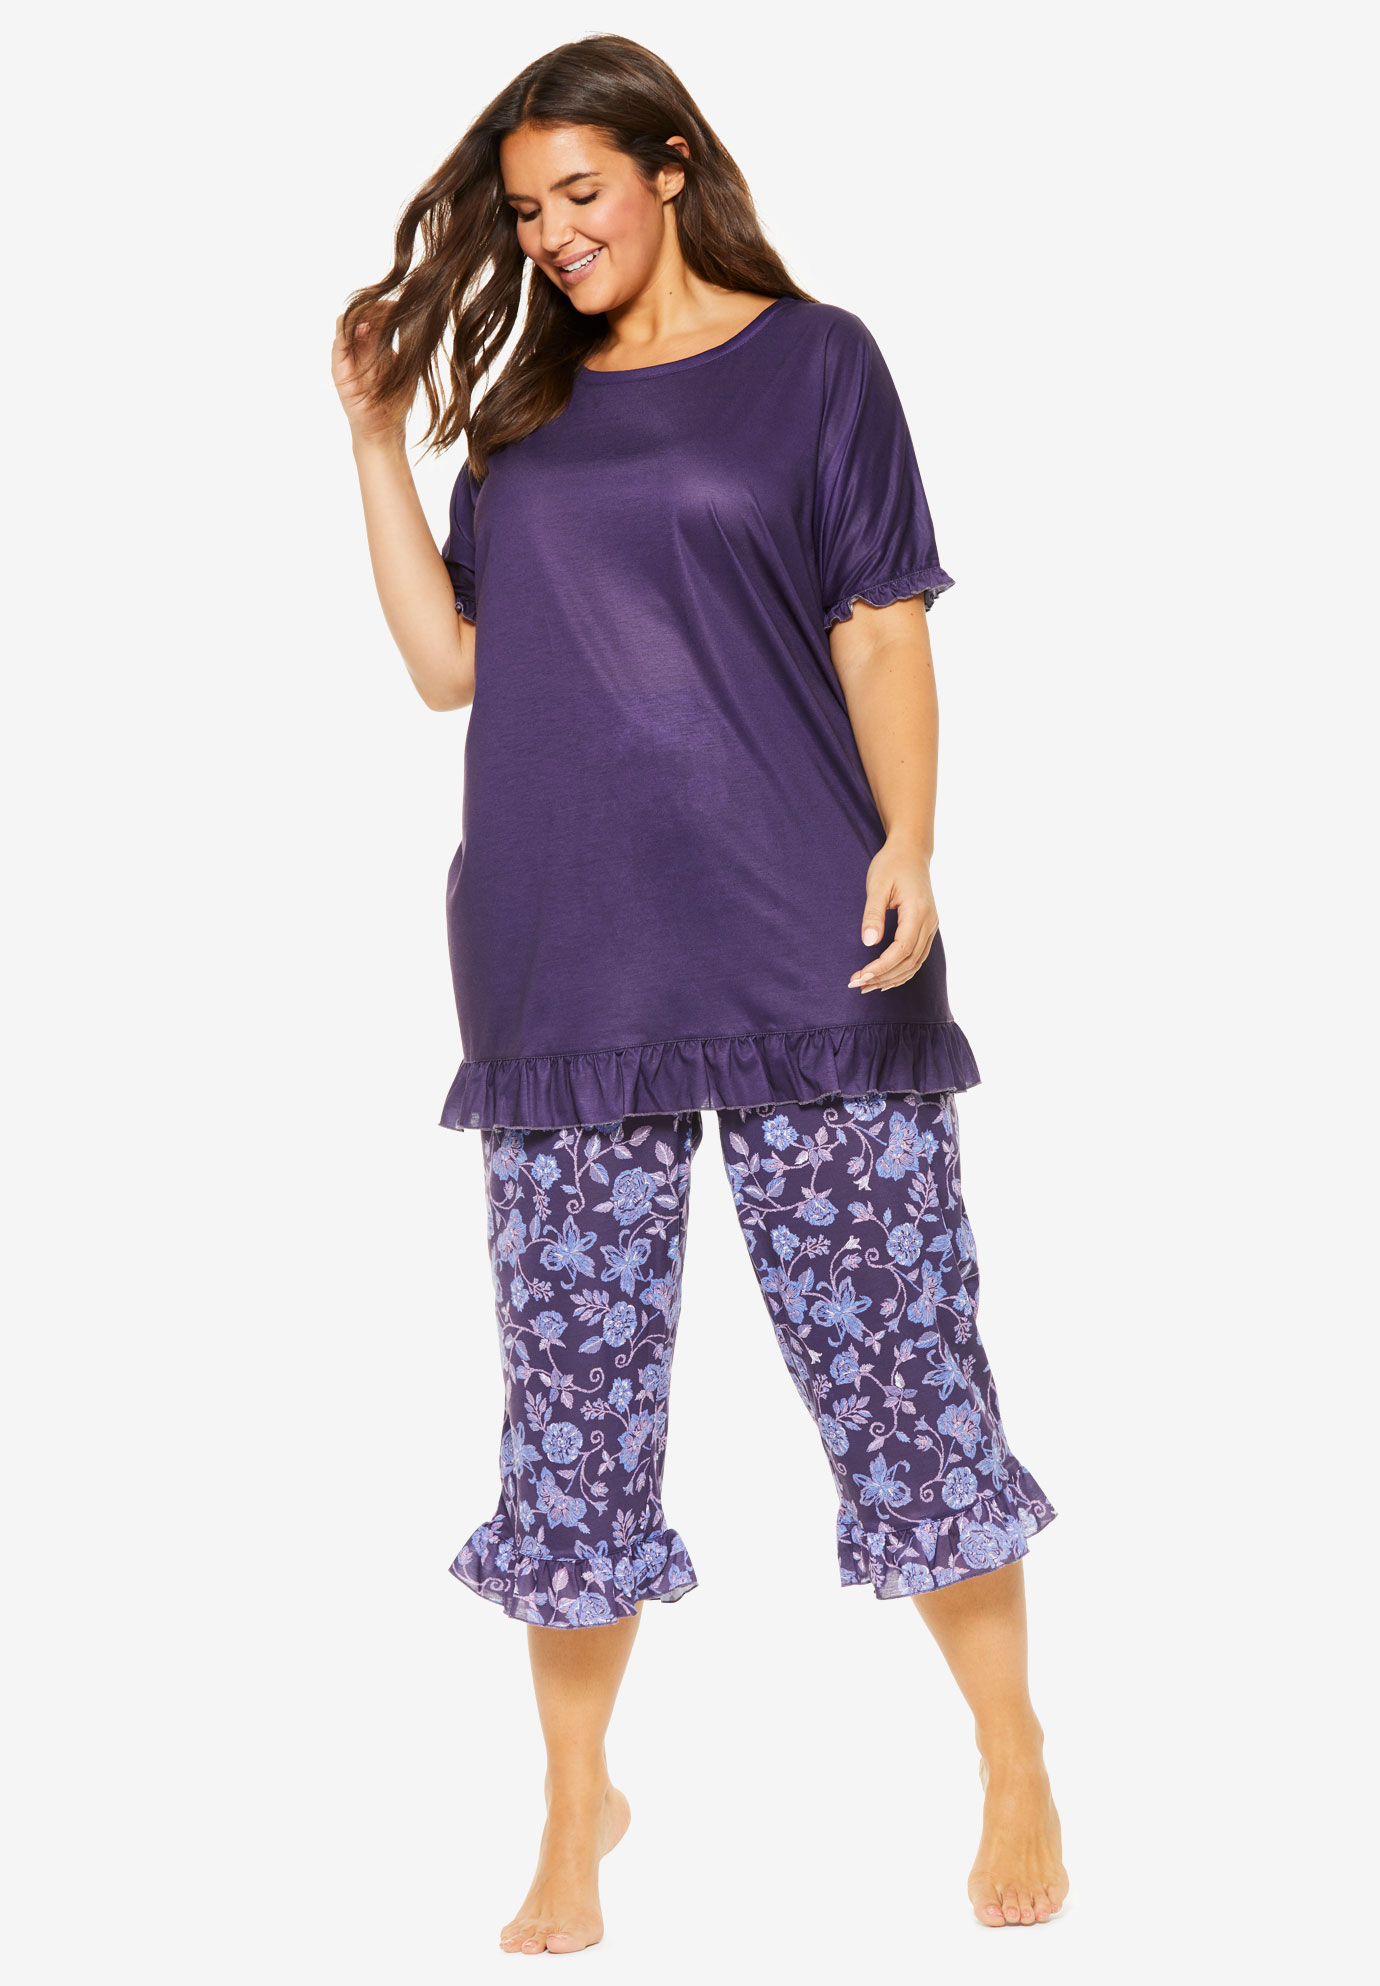 Cool Dreams Ruffled Capri Pajama Set,